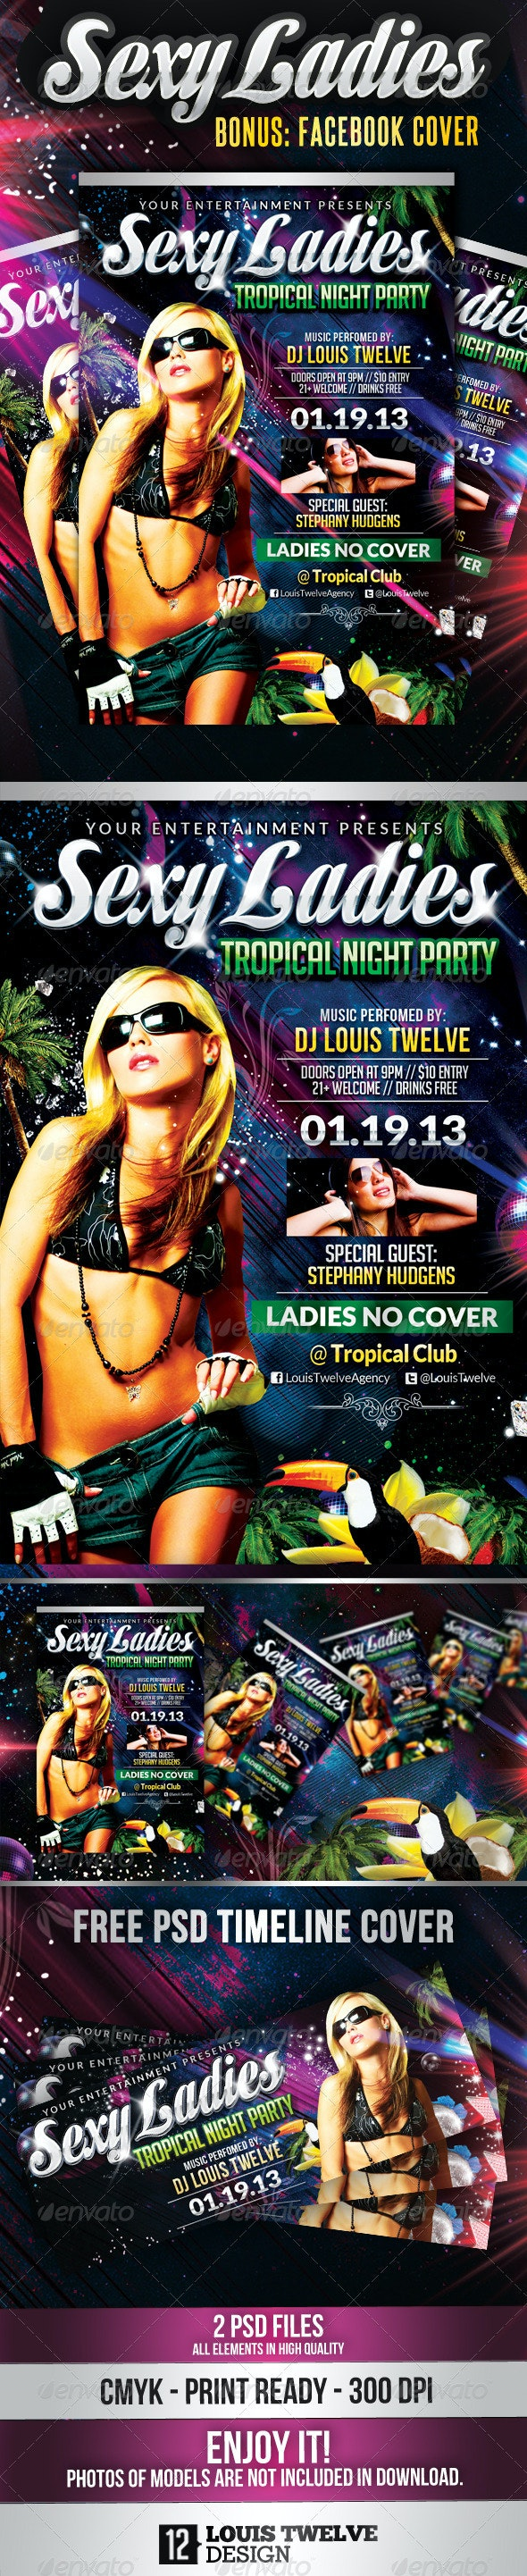 Sexy Ladies Tropìcal Night   Flyer + FB Cover - Clubs & Parties Events